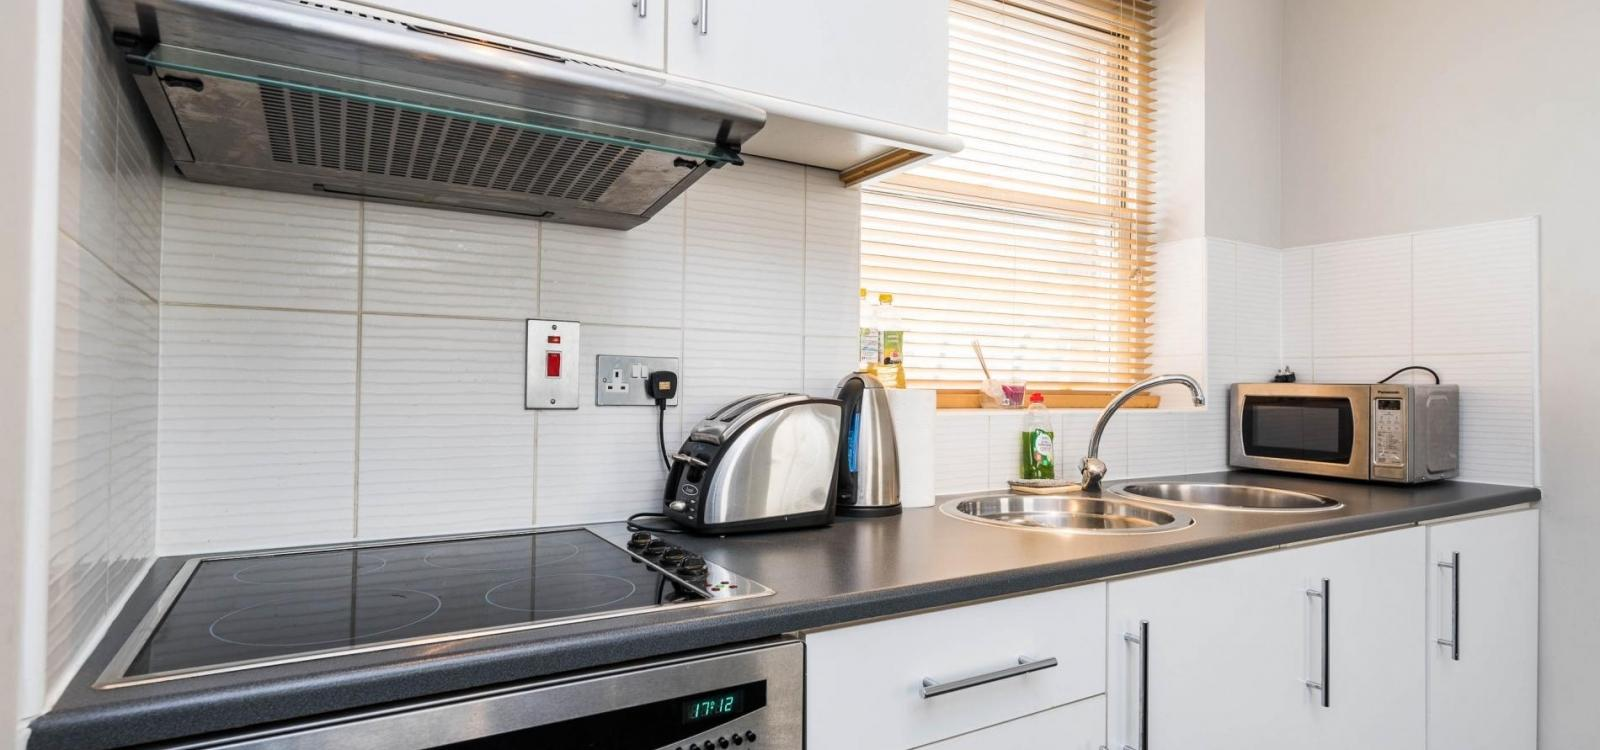 1 Bed Flat in St Paul's the Very Centre of London!